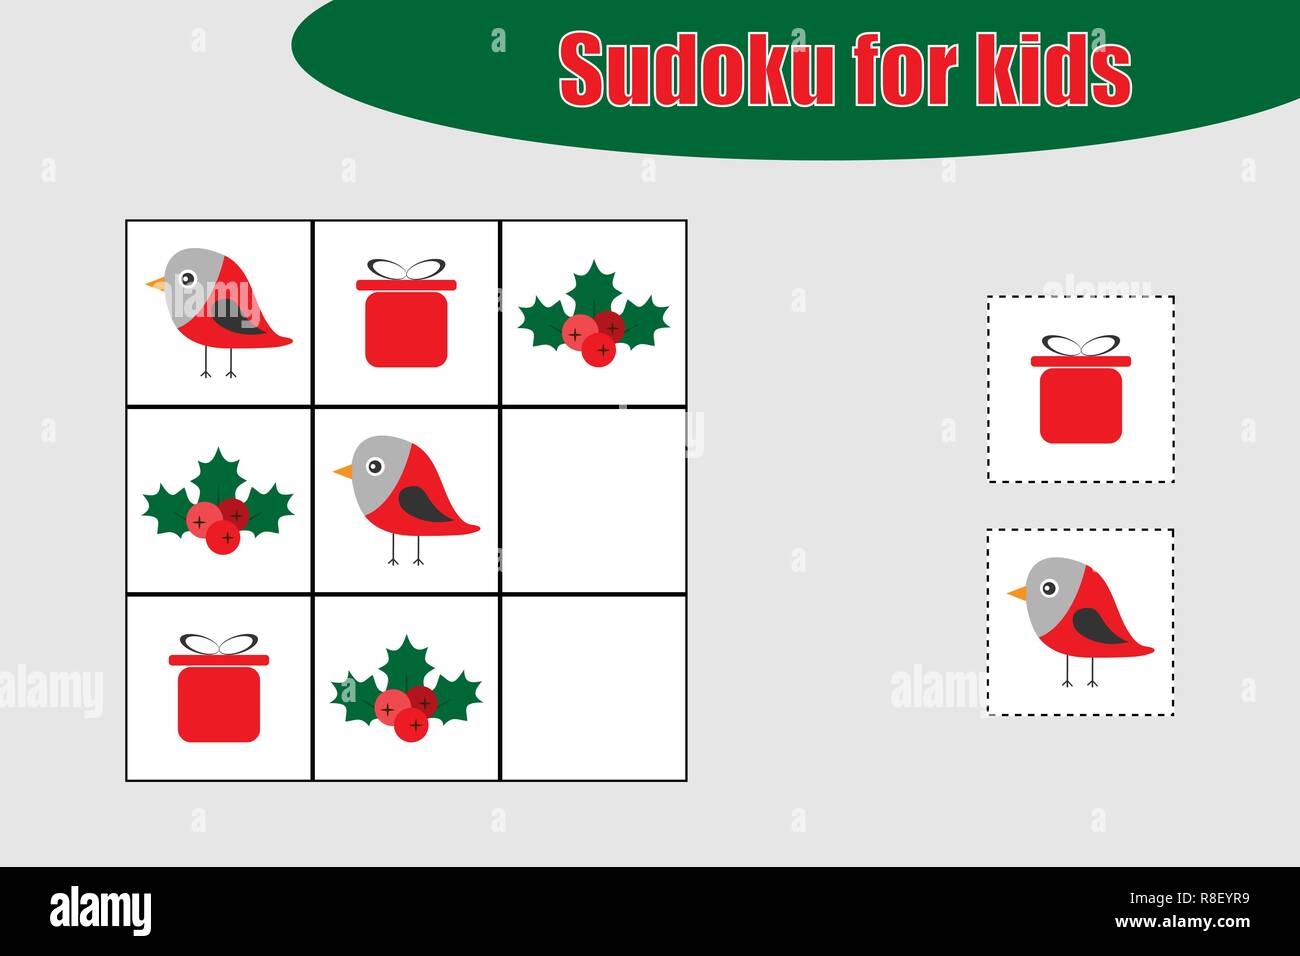 Sudoku Game Stock Photos Amp Sudoku Game Stock Images